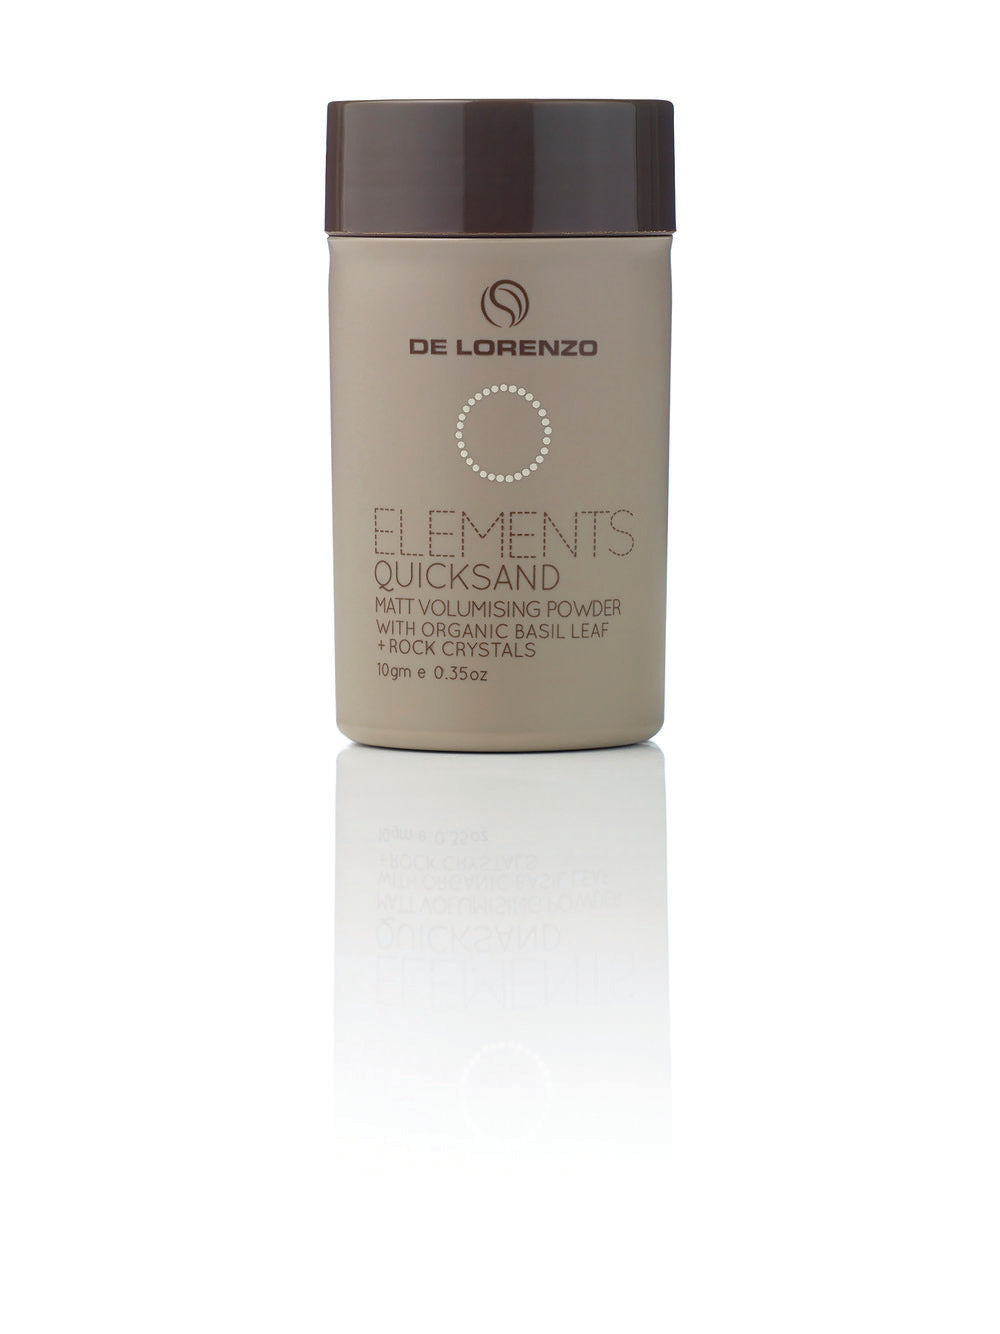 De Lorenzo Elements Quicksand 10g